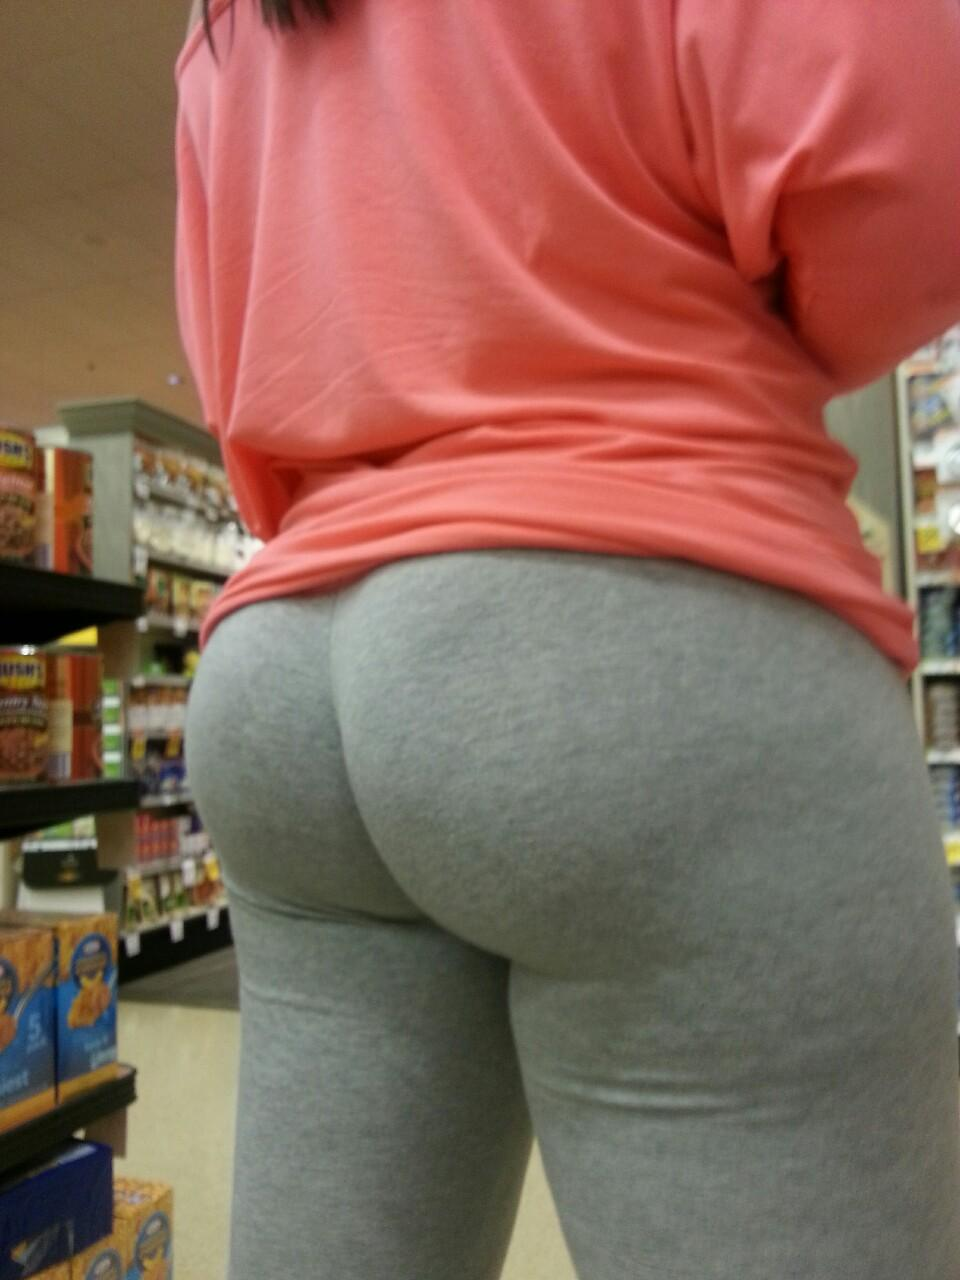 A Visitors Gf At The Grocery Store  Hot Girls In Yoga Pants  Best Booty Leggings Pics-3561